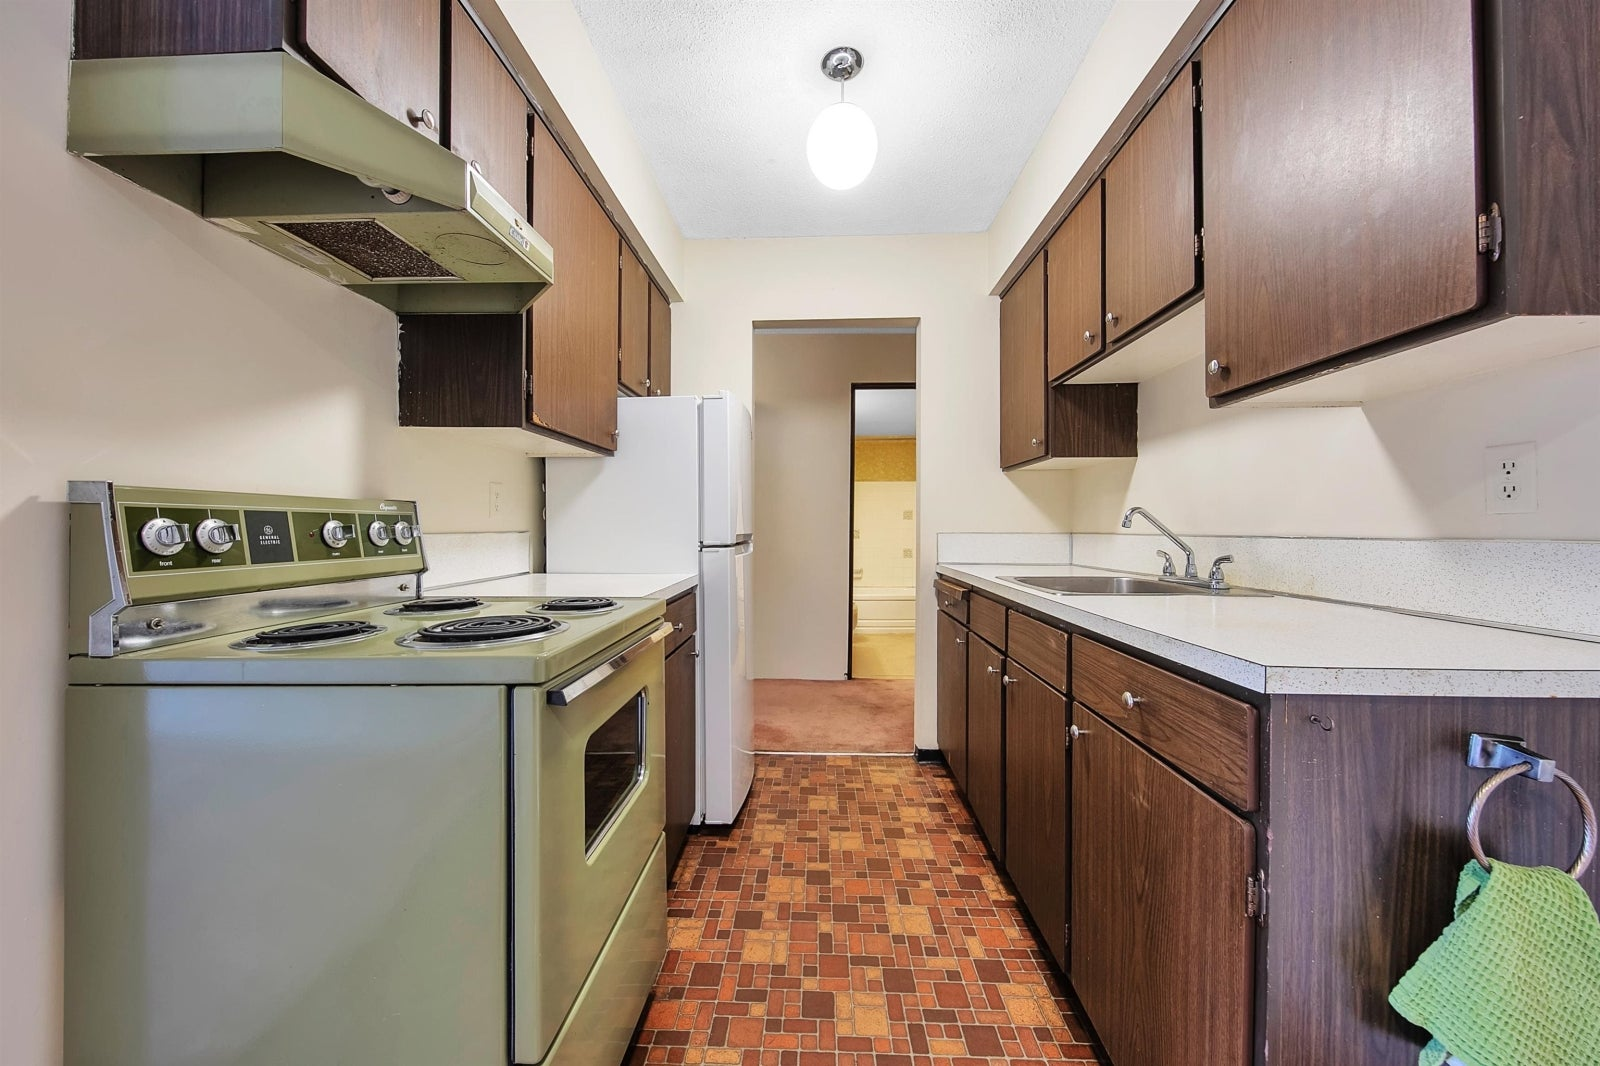 306 1345 CHESTERFIELD AVENUE - Central Lonsdale Apartment/Condo for sale, 1 Bedroom (R2622121) #5